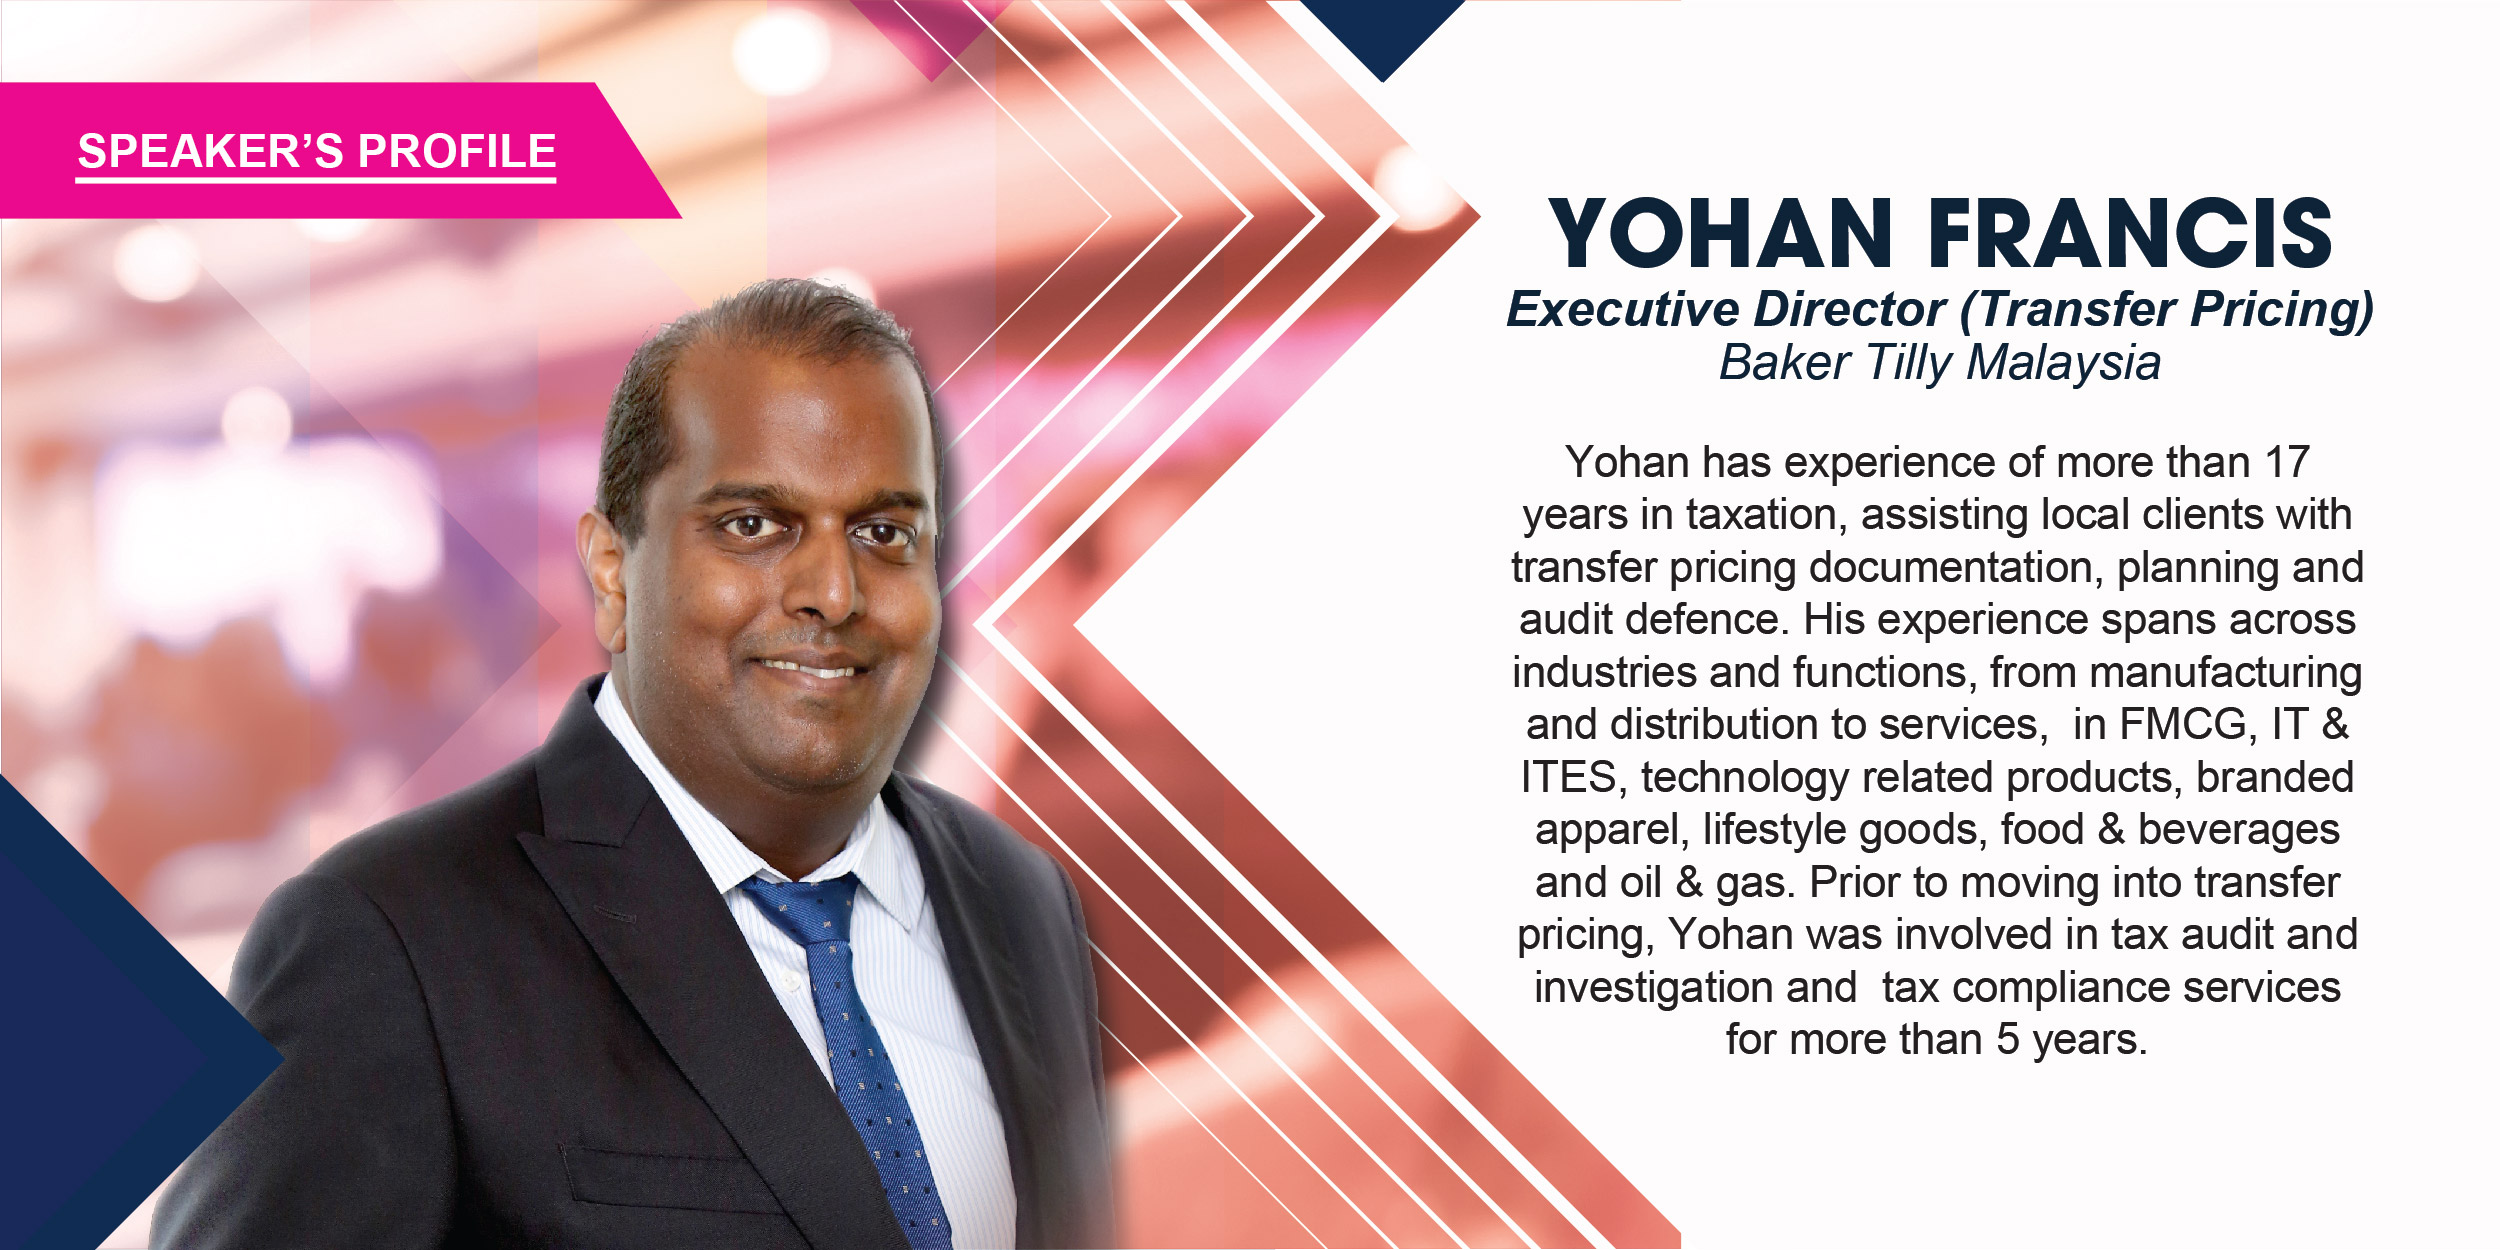 Yohan has experience of more than 17 years in taxation, assisting local clients with transfer pricing documentation, planning and audit defence. His experience spans across industries and functions, from manufacturing and distribution to services, in FMCG, IT & ITES, technology related products, branded apparel, lifestyle goods, food & beverages and oil & gas. Prior to moving into transfer pricing, Yohan was involved in tax audit and investigation and tax compliance services for more than 5 years.